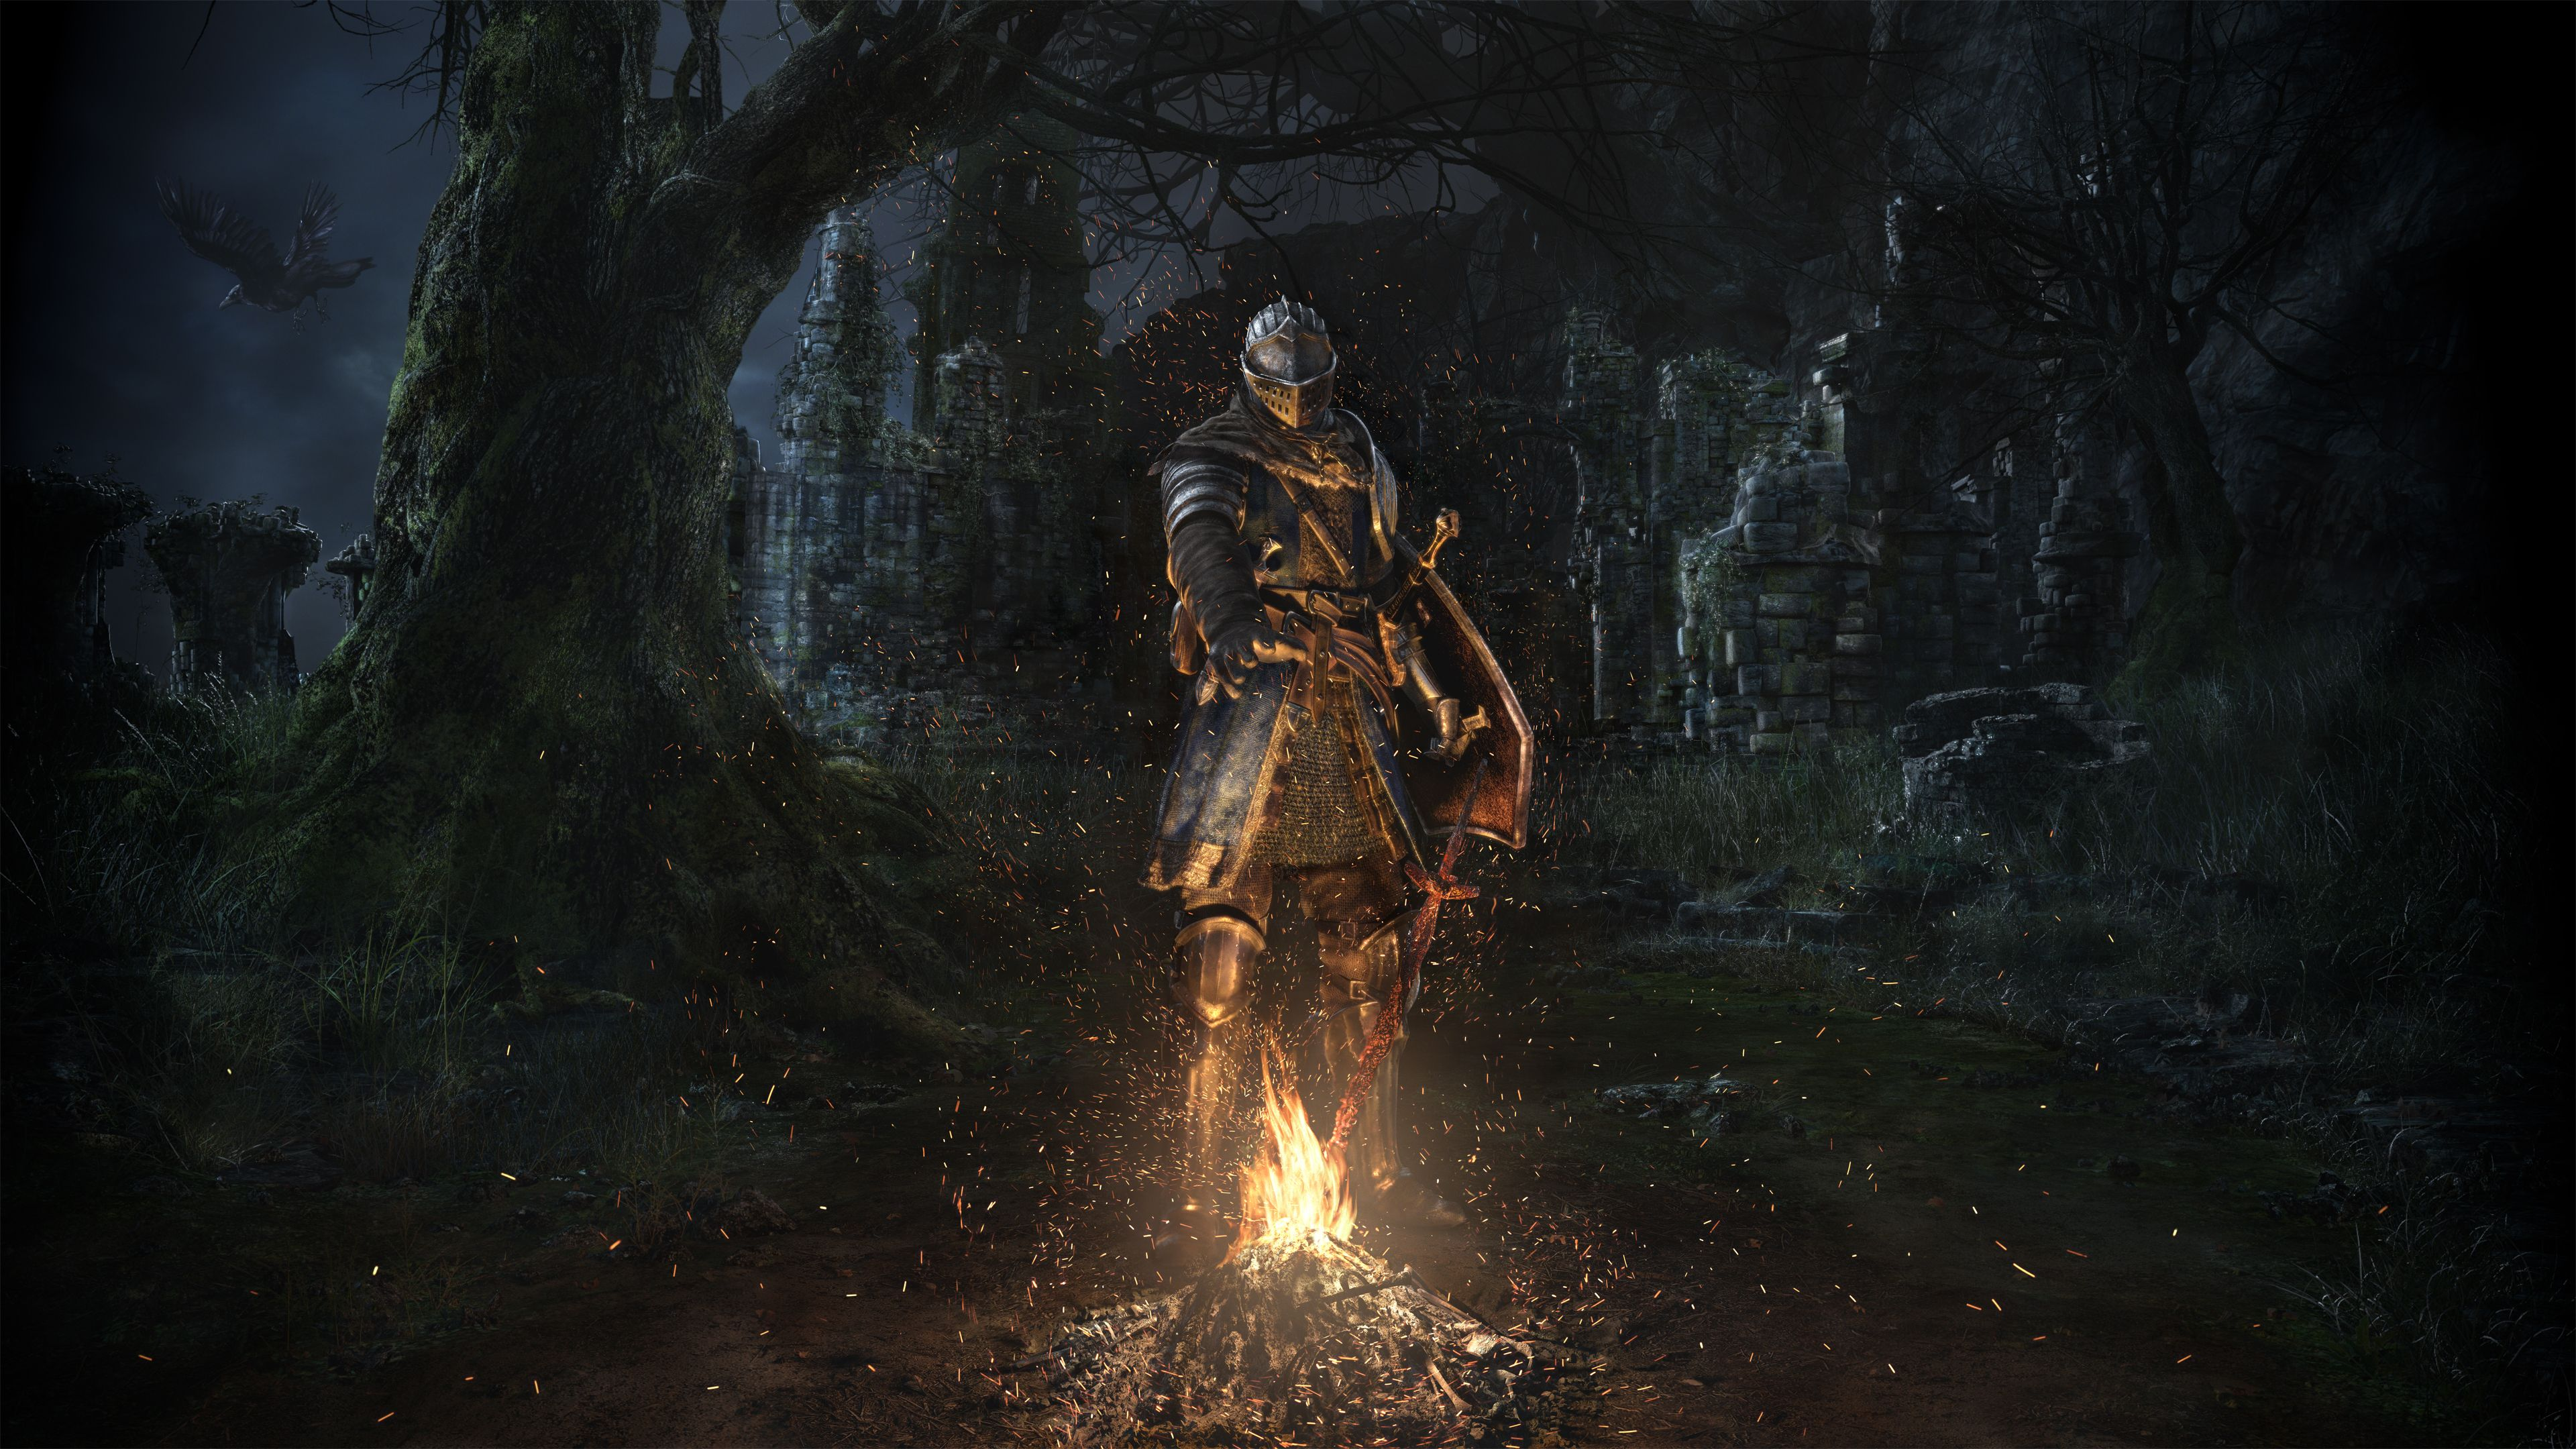 dark souls backgrounds, dark souls wallpaper phone